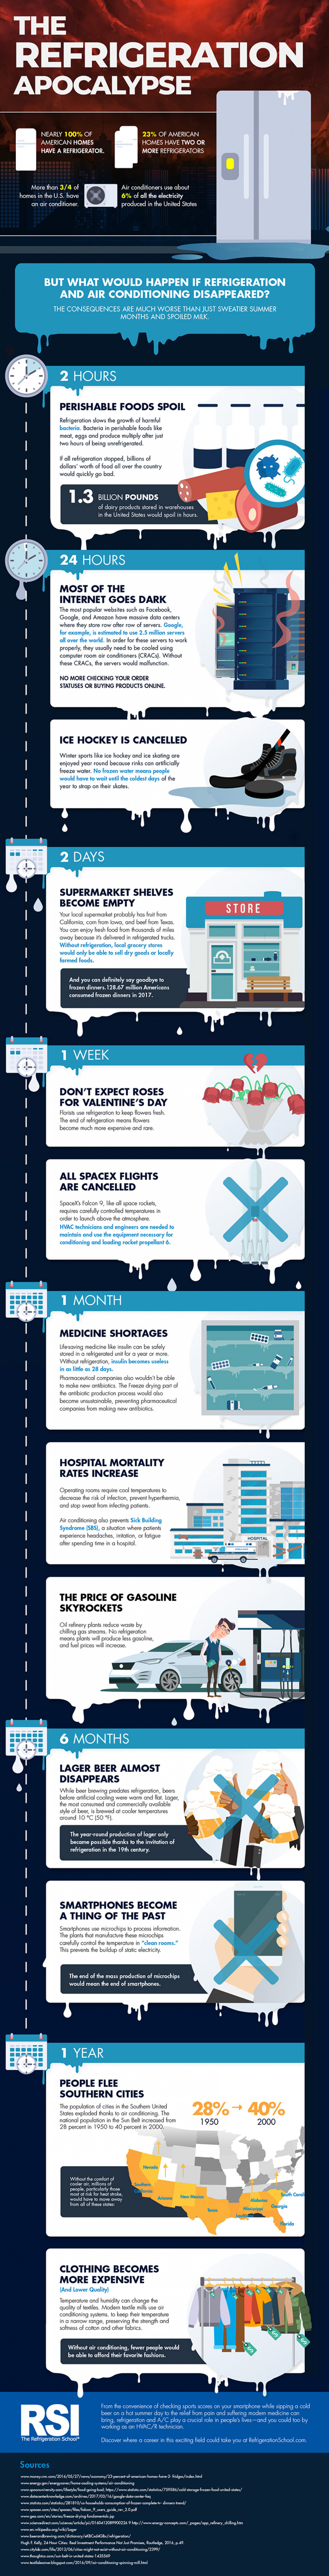 The Refrigeration Apocalypse: What Would Happen if Refrigeration and Air Conditioning Disappeared? Infographic